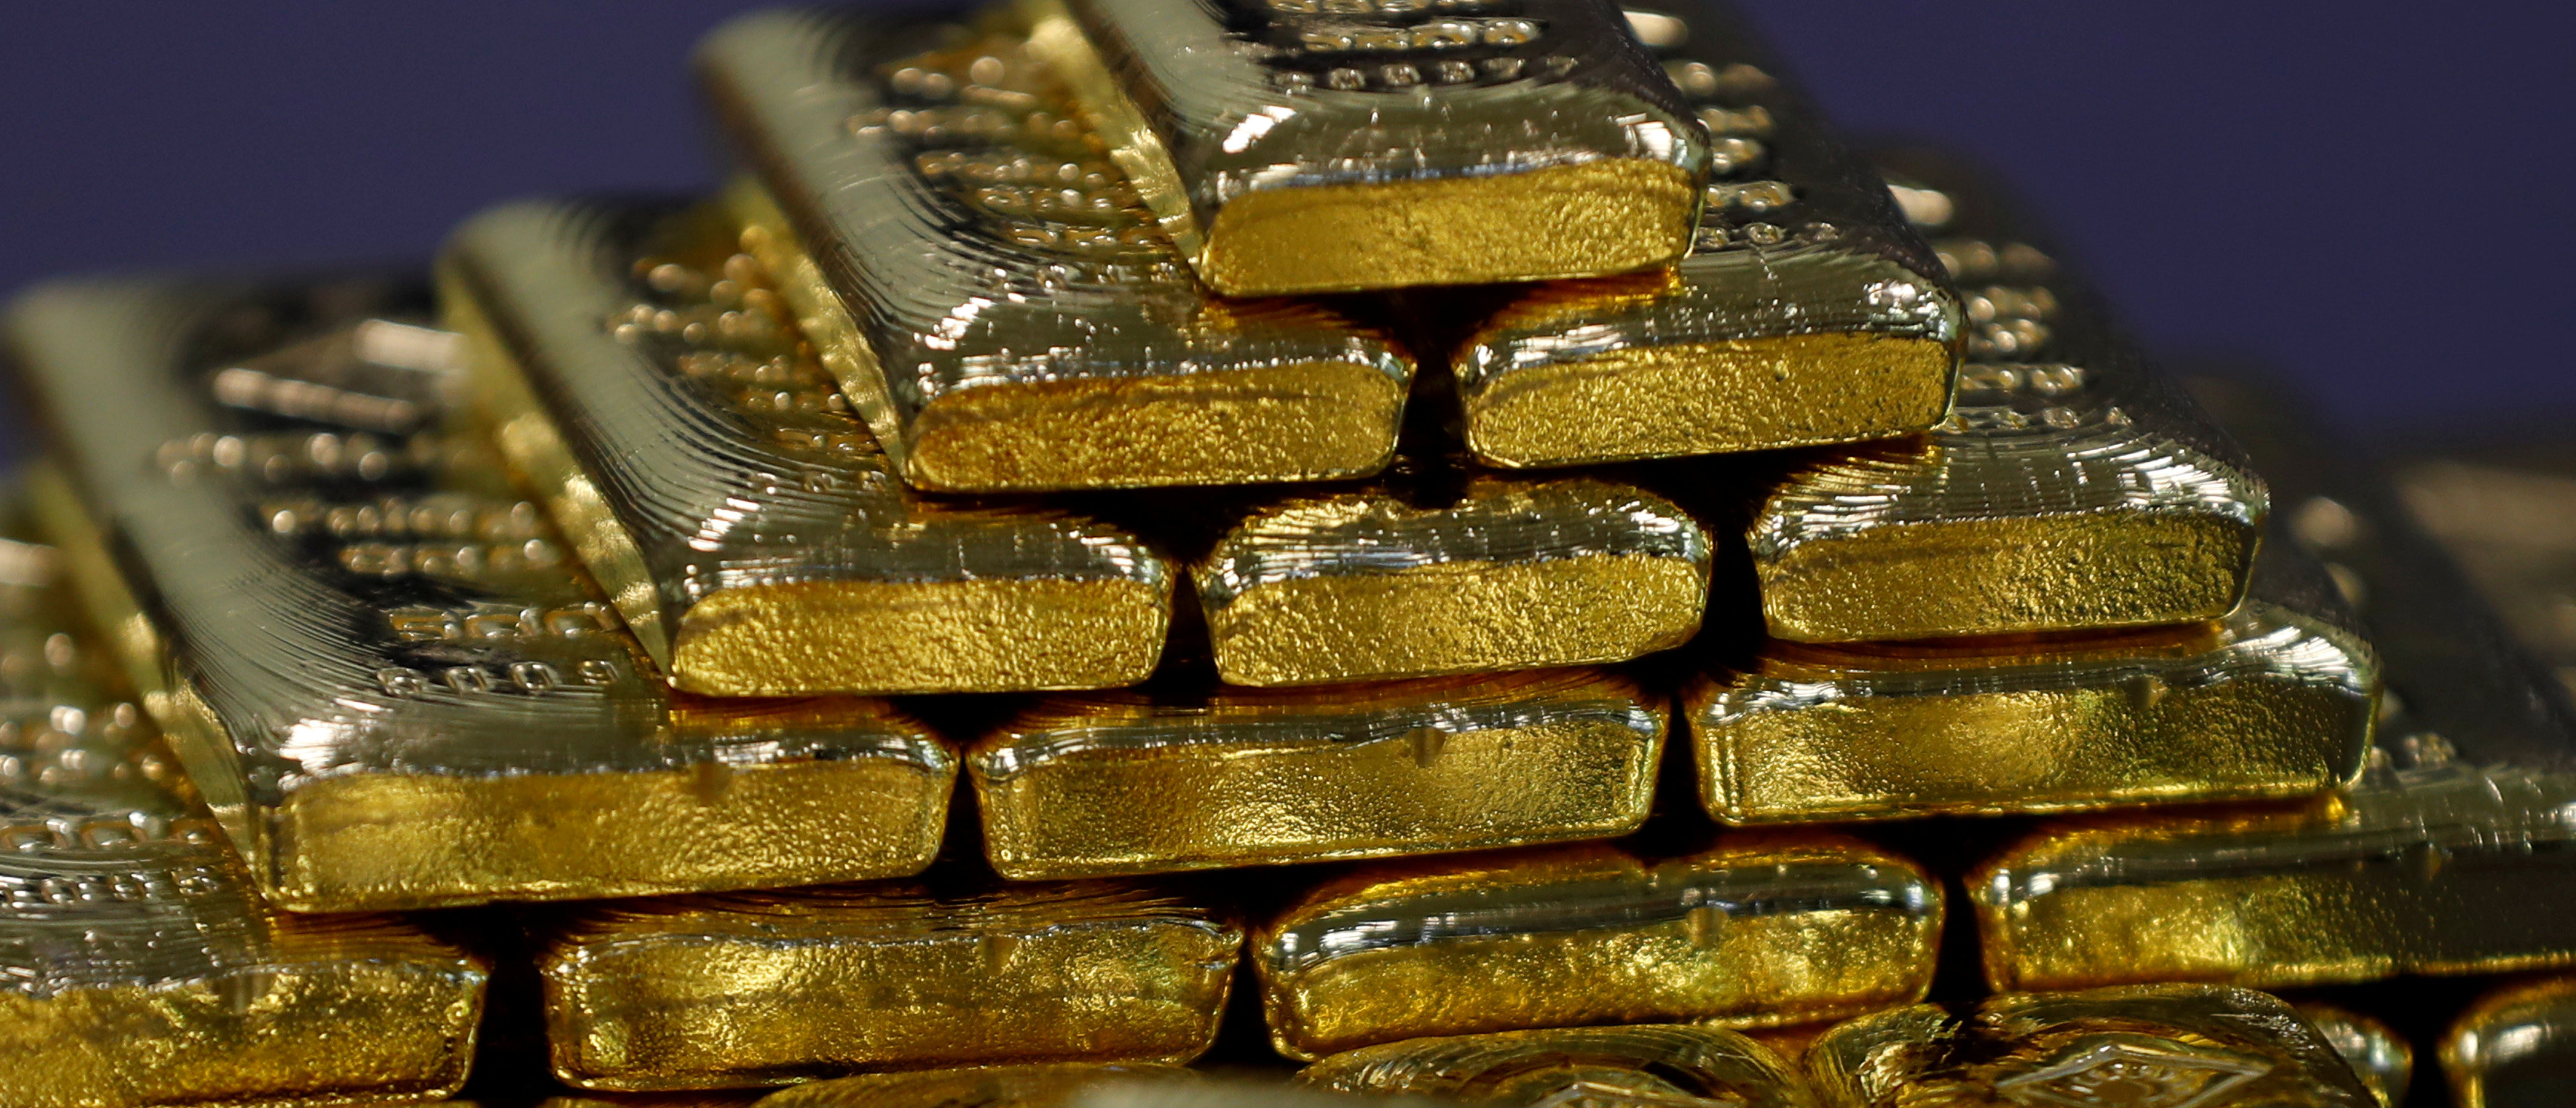 FILE PHOTO: Gold bars are seen in the Austrian Gold and Silver Separating Plant 'Oegussa' in Vienna, Austria, December 15, 2017. REUTERS/Leonhard Foeger/File Photo | Cargo Plane Drops Hundreds Of Gold Bars